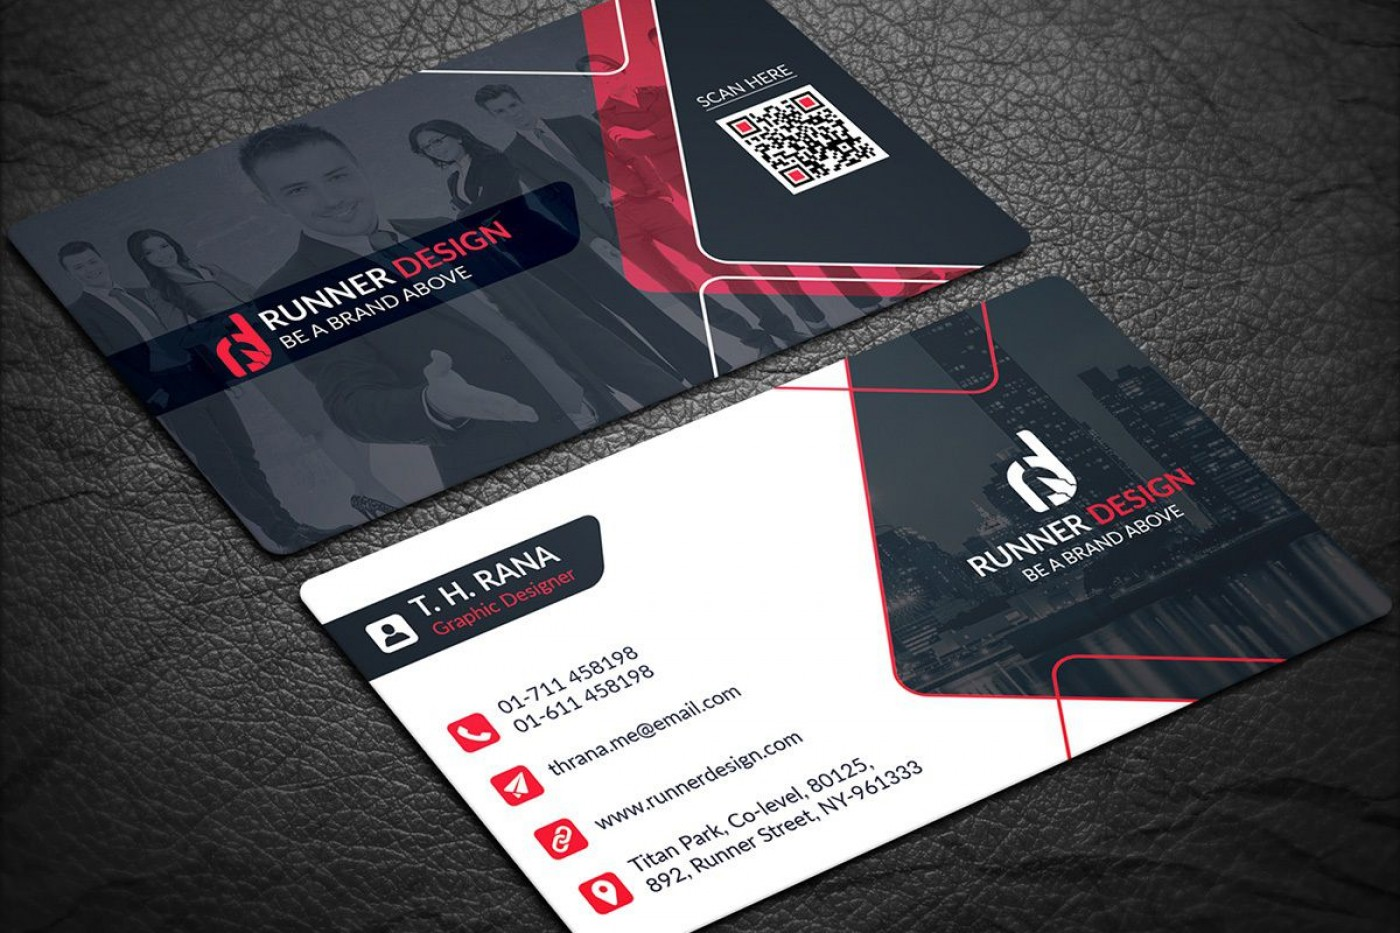 003 Dreaded Free Adobe Photoshop Busines Card Template Photo  Download1400